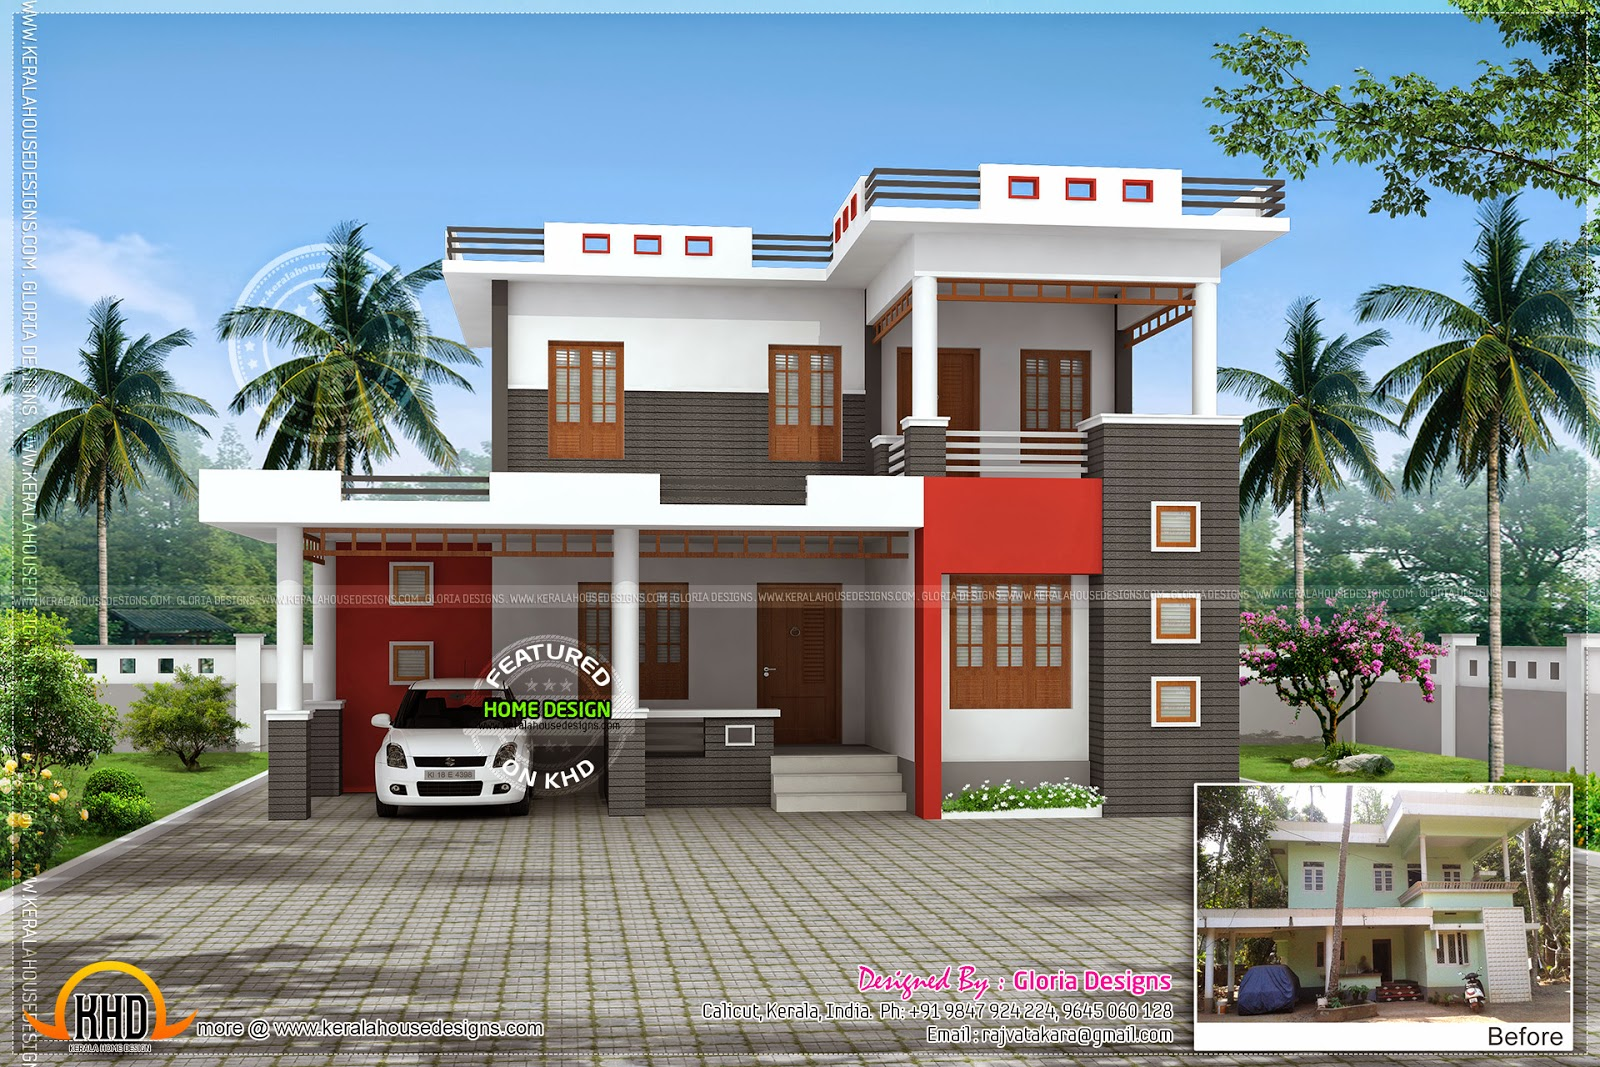 Renovation 3d model for an old house kerala home design for Kerala house models photos